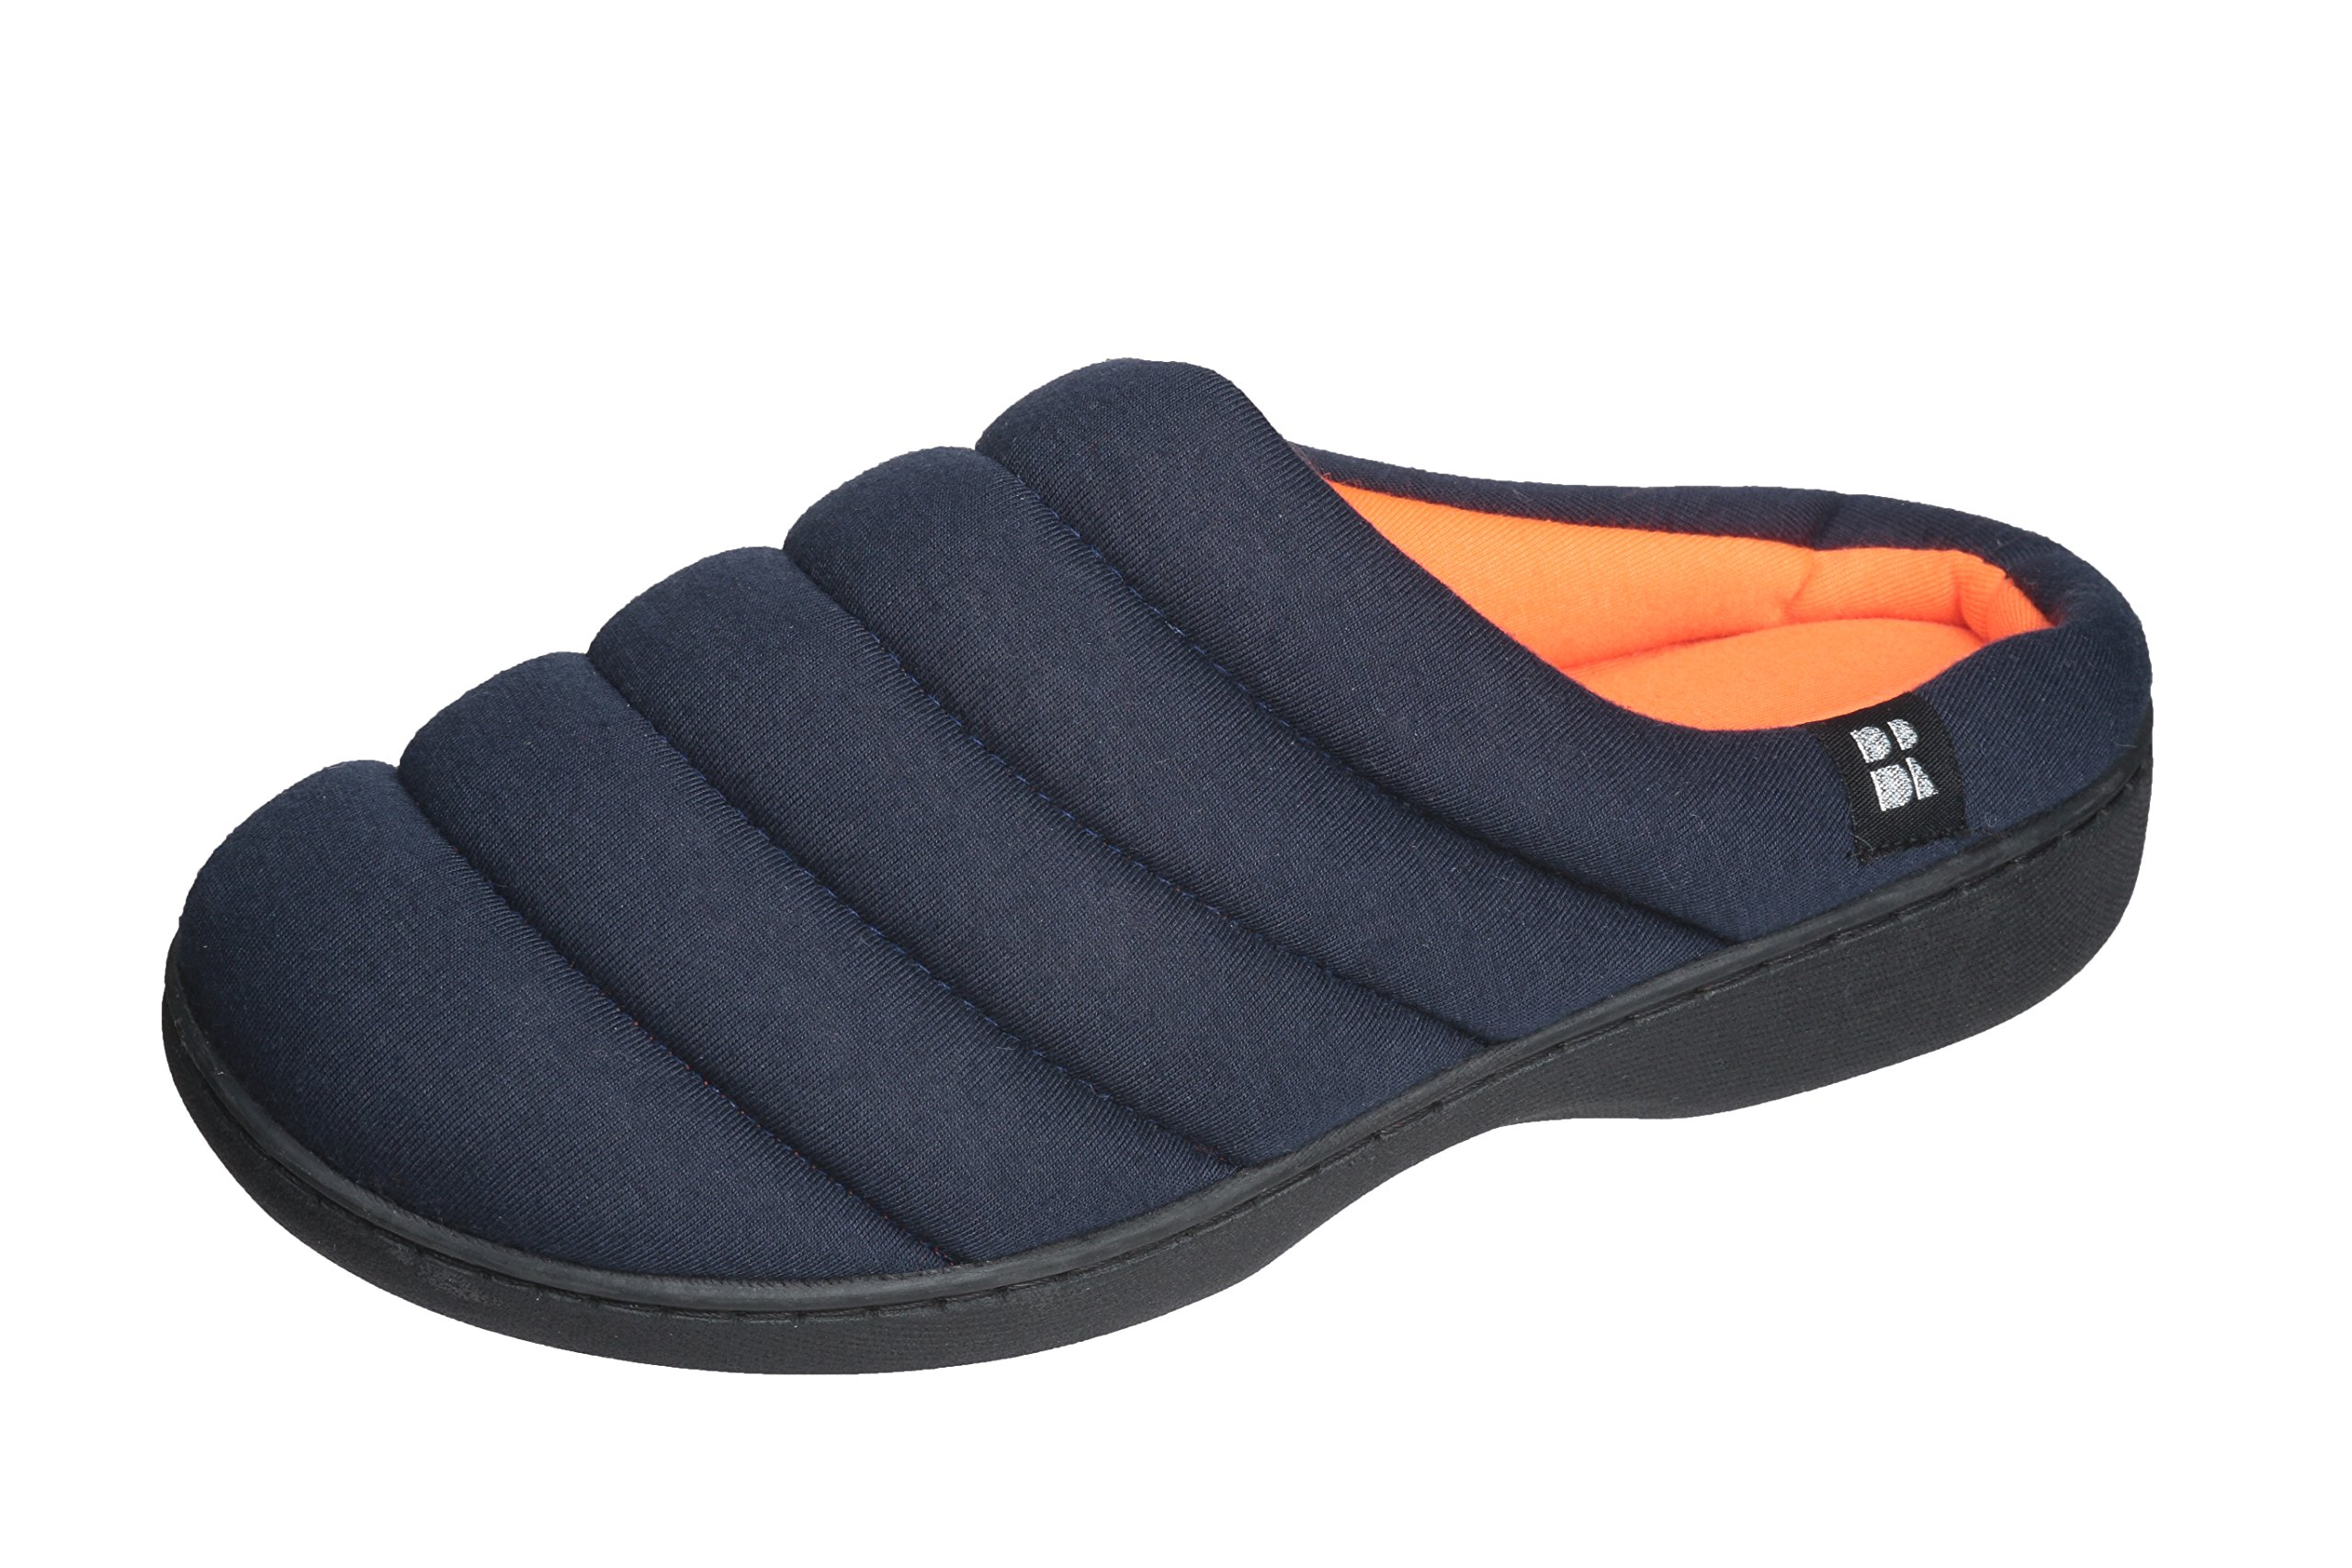 Joan Vass Quilted House Slippers for Women;A Soft Plush Feeling Indoor Outdoor House Shoe